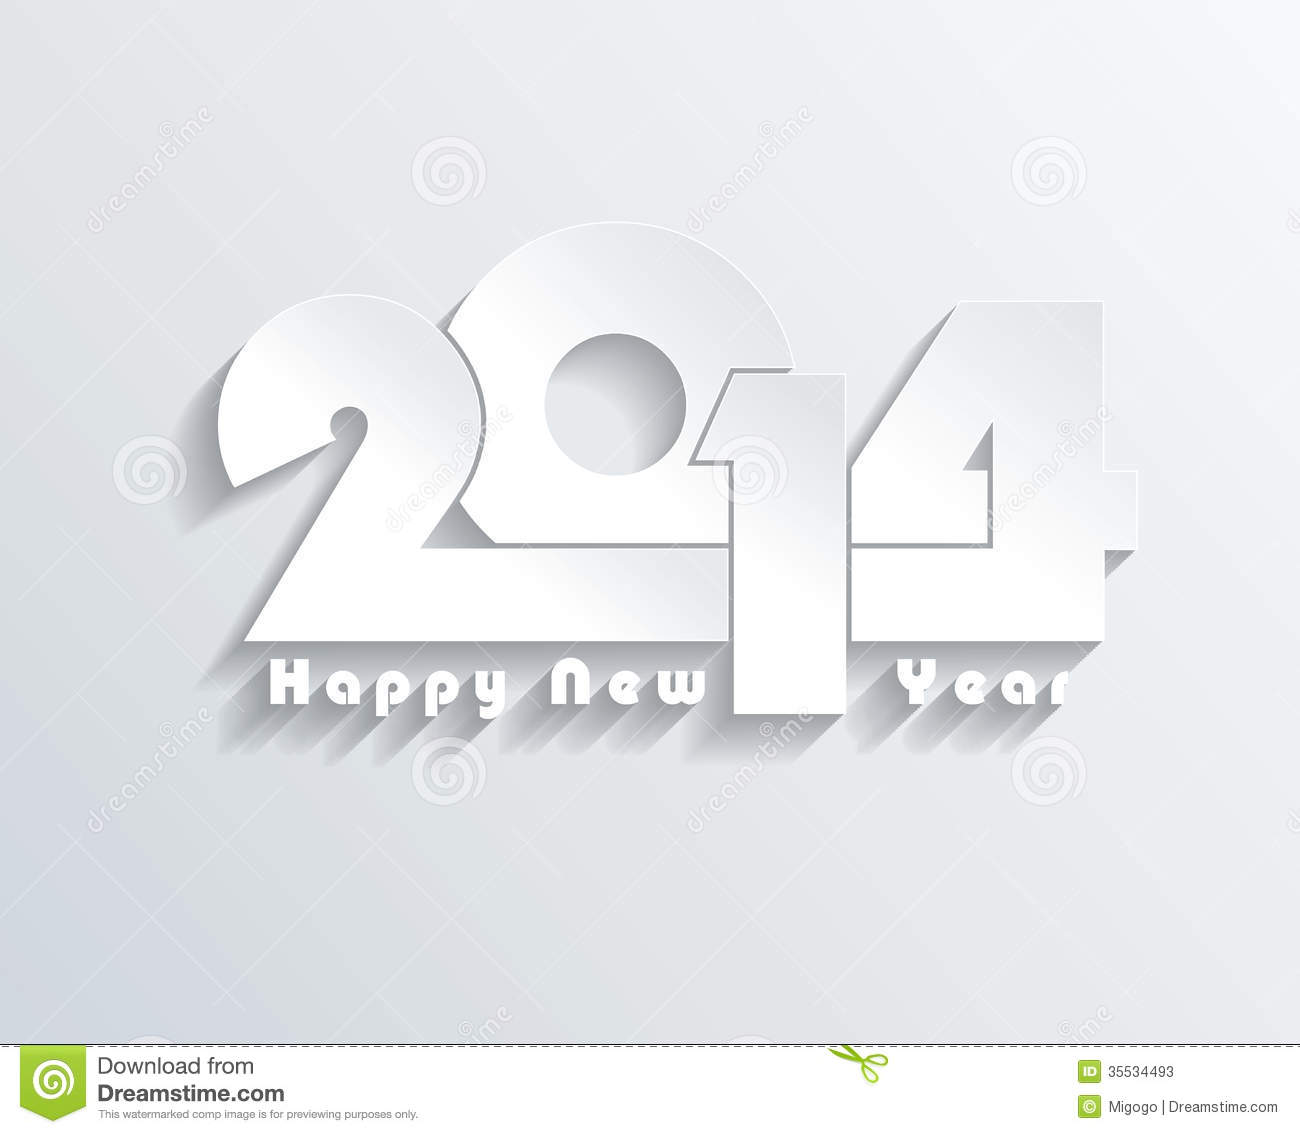 Happy new year 2014 creative greeting card stock vector happy new year 2014 creative greeting card m4hsunfo